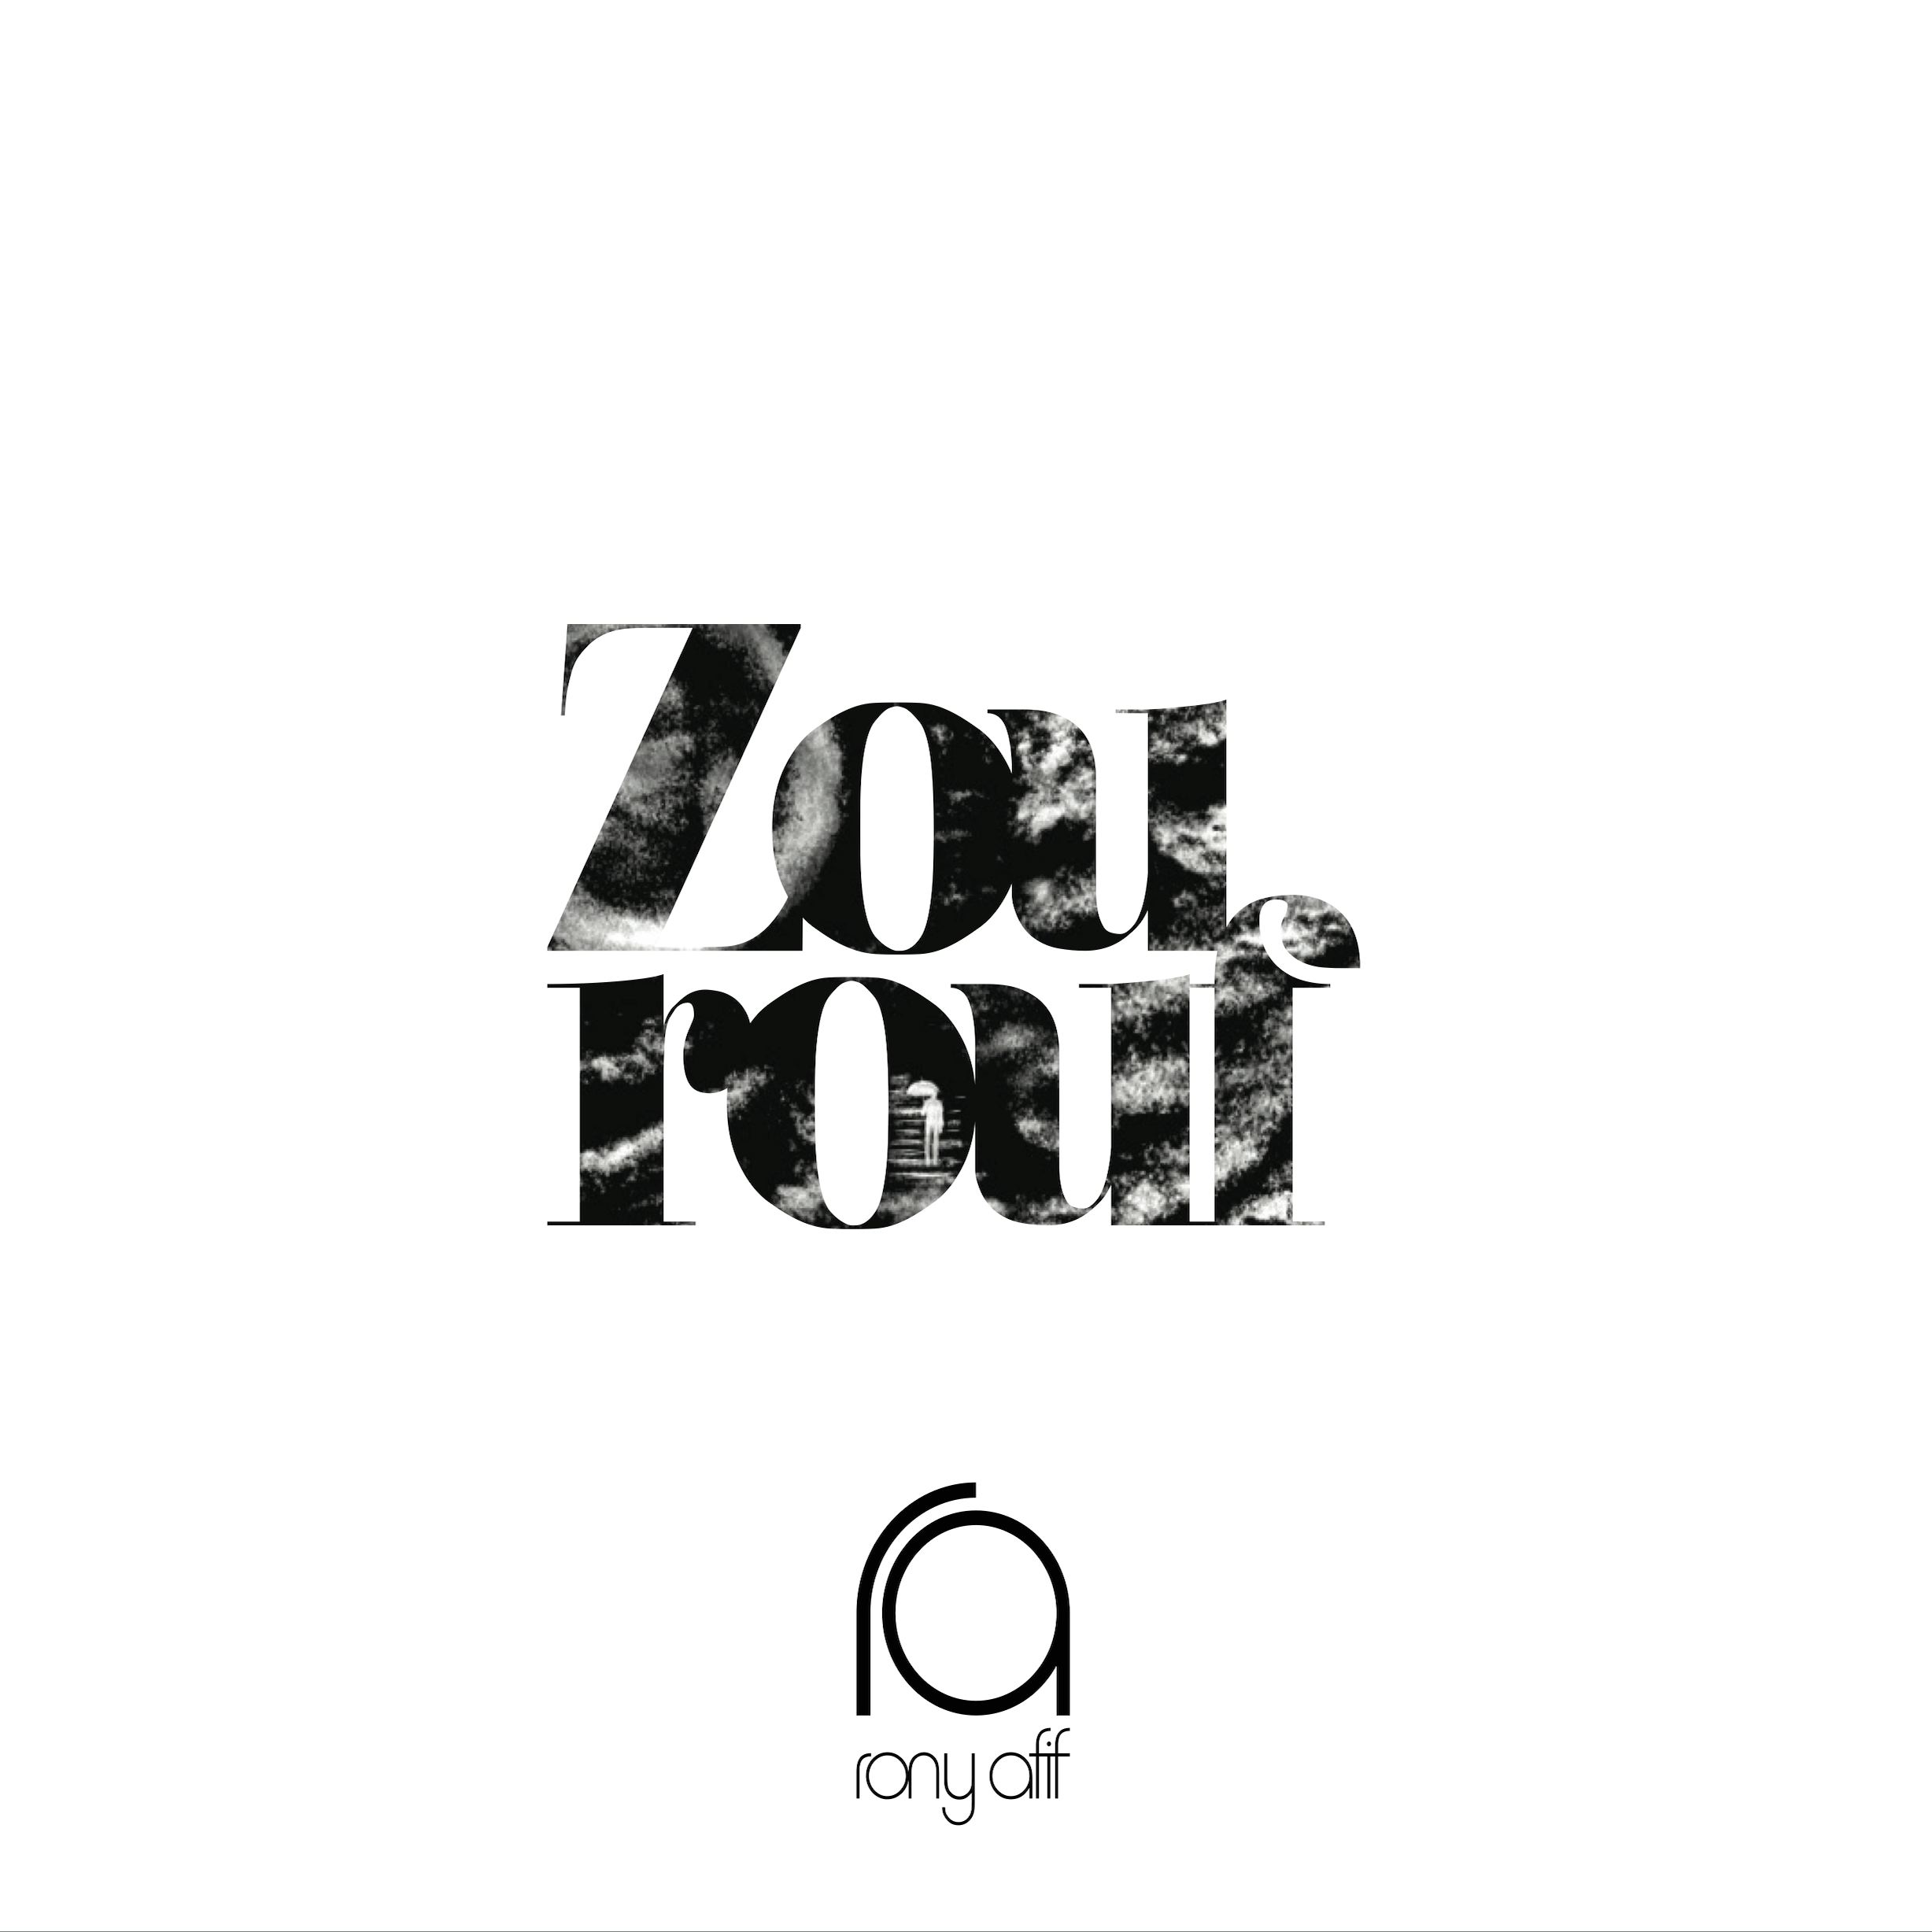 RONY AFIF  /  Zourouf  / 2014   Rony Afif : Drums, Compositions  Tarek Yamani : Piano, Arrangement, Producer  Troy Roberts : Sax  Alex Claffy : Bass